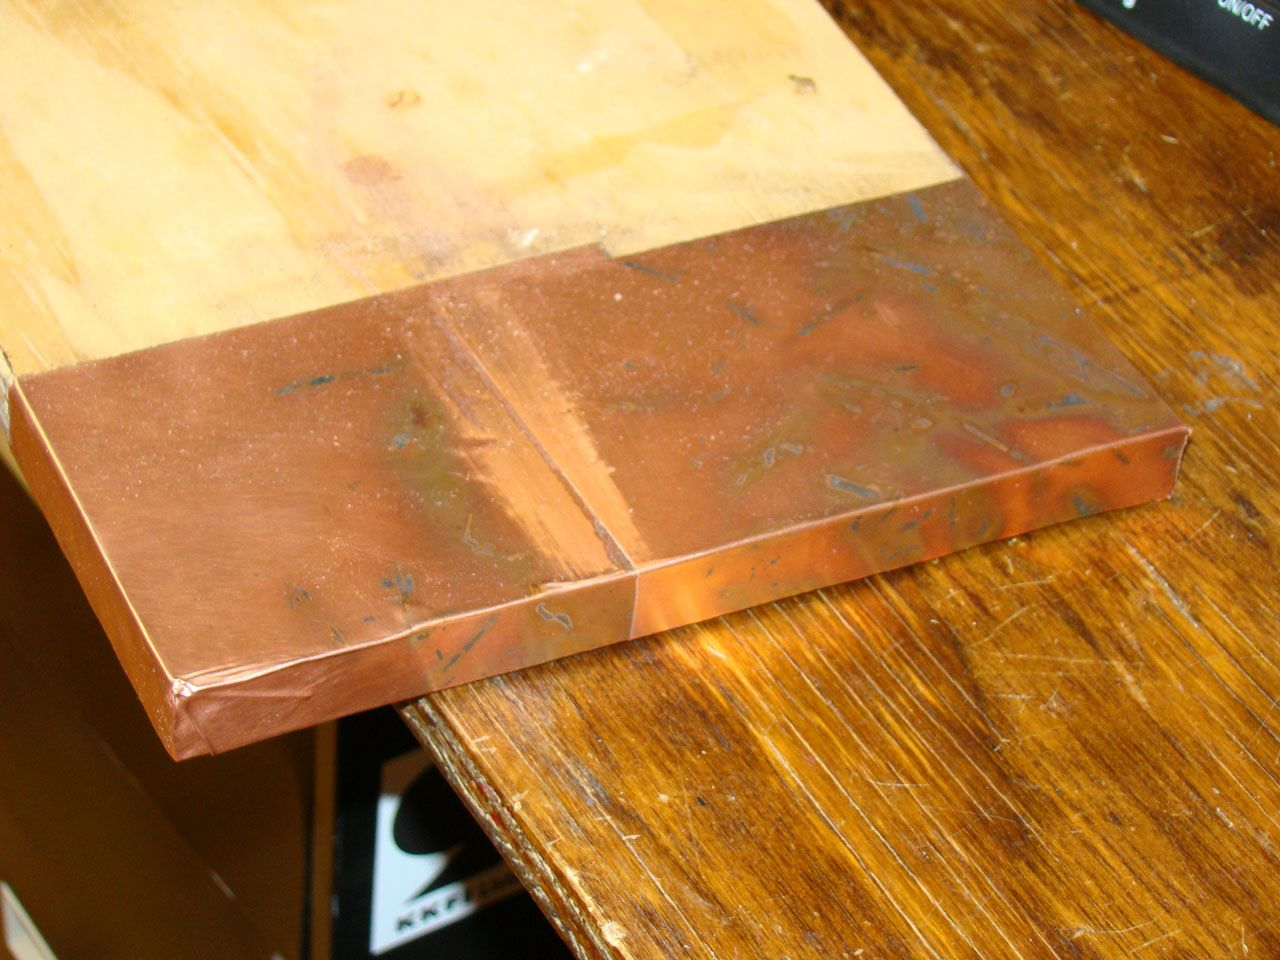 Copper Countertop Want To Make Diy Possibilities